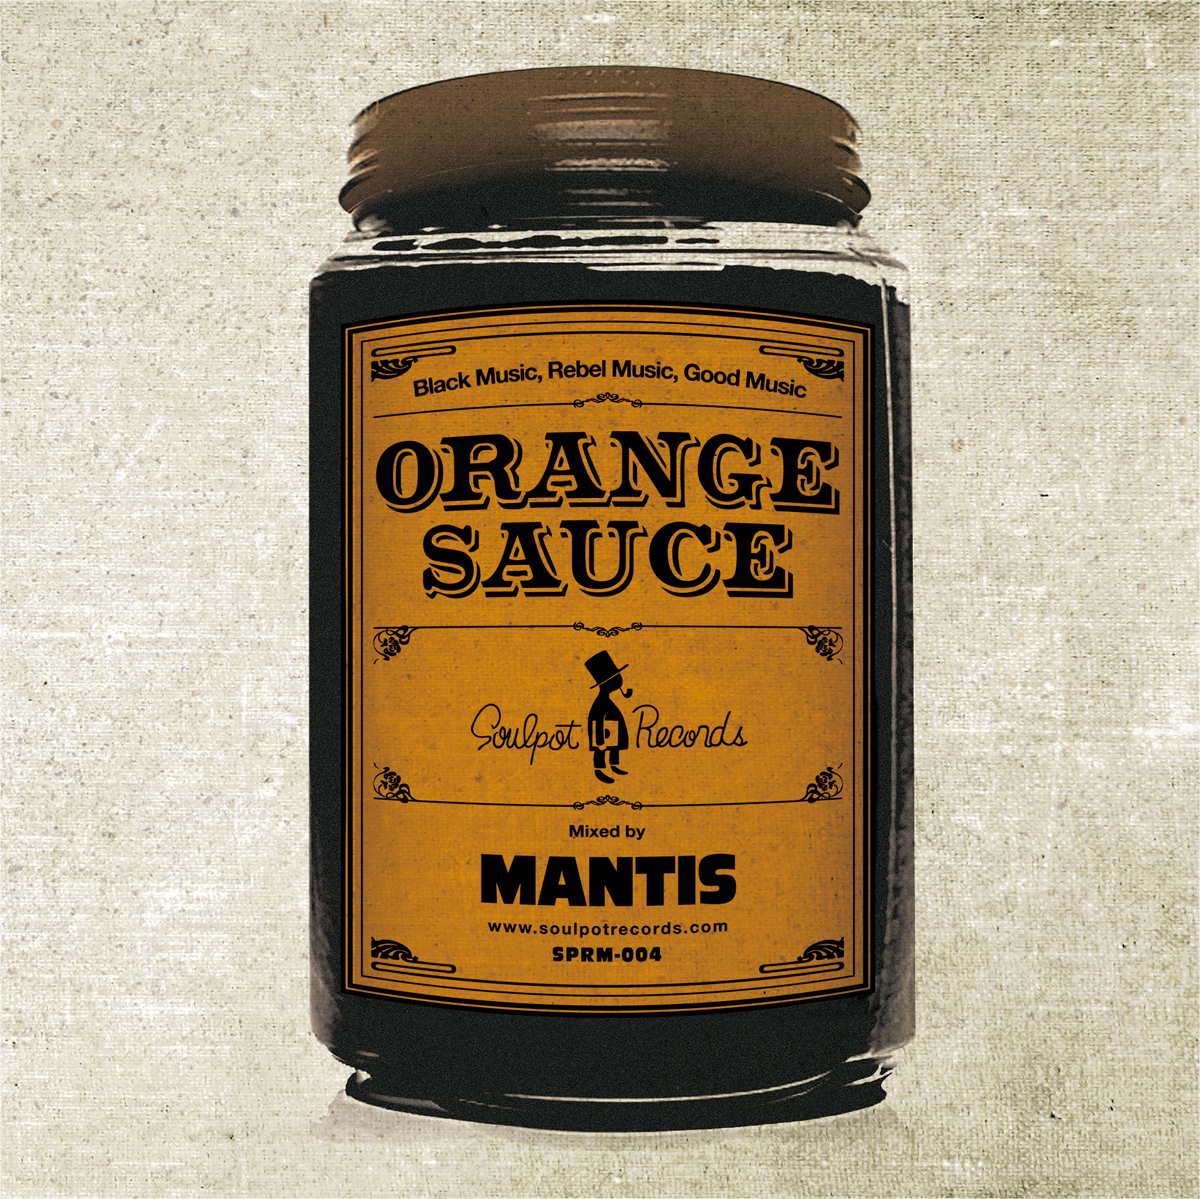 Mantis / Orange Sauce